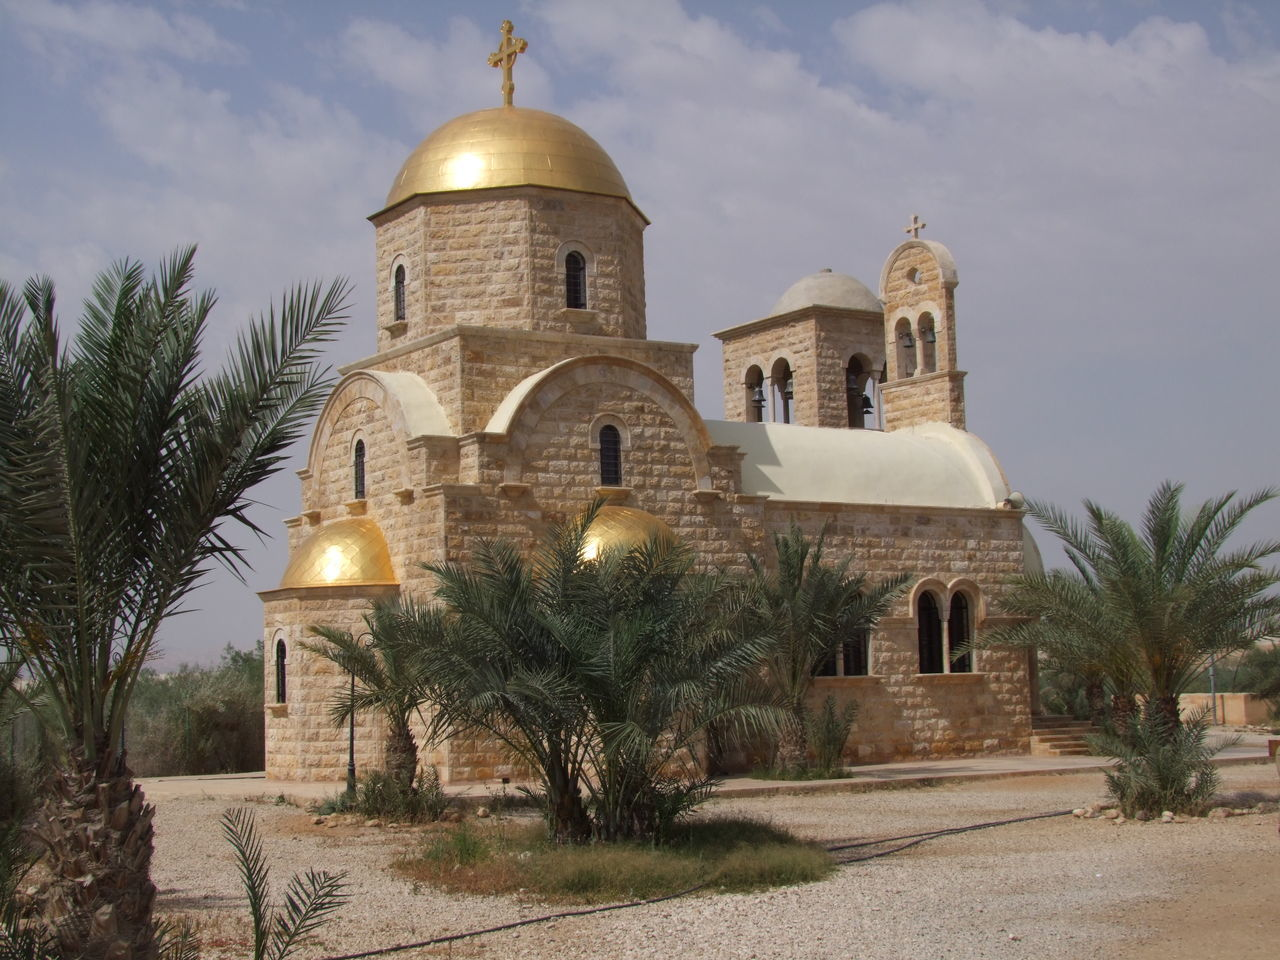 Greek Orthodox Church, Bethany Architecture Bethany Blue Sky White Clouds Building Exterior Built Structure Church Composition Cultures Dome Famous Place Full Frame Gold Cupola Greek Orthodox Church History Jordan No People Outdoor Photography Pilgrimage Place Of Worship Place Of Worship Religion Spirituality Sunlight And Shadows Tourist Attraction  Tranquility